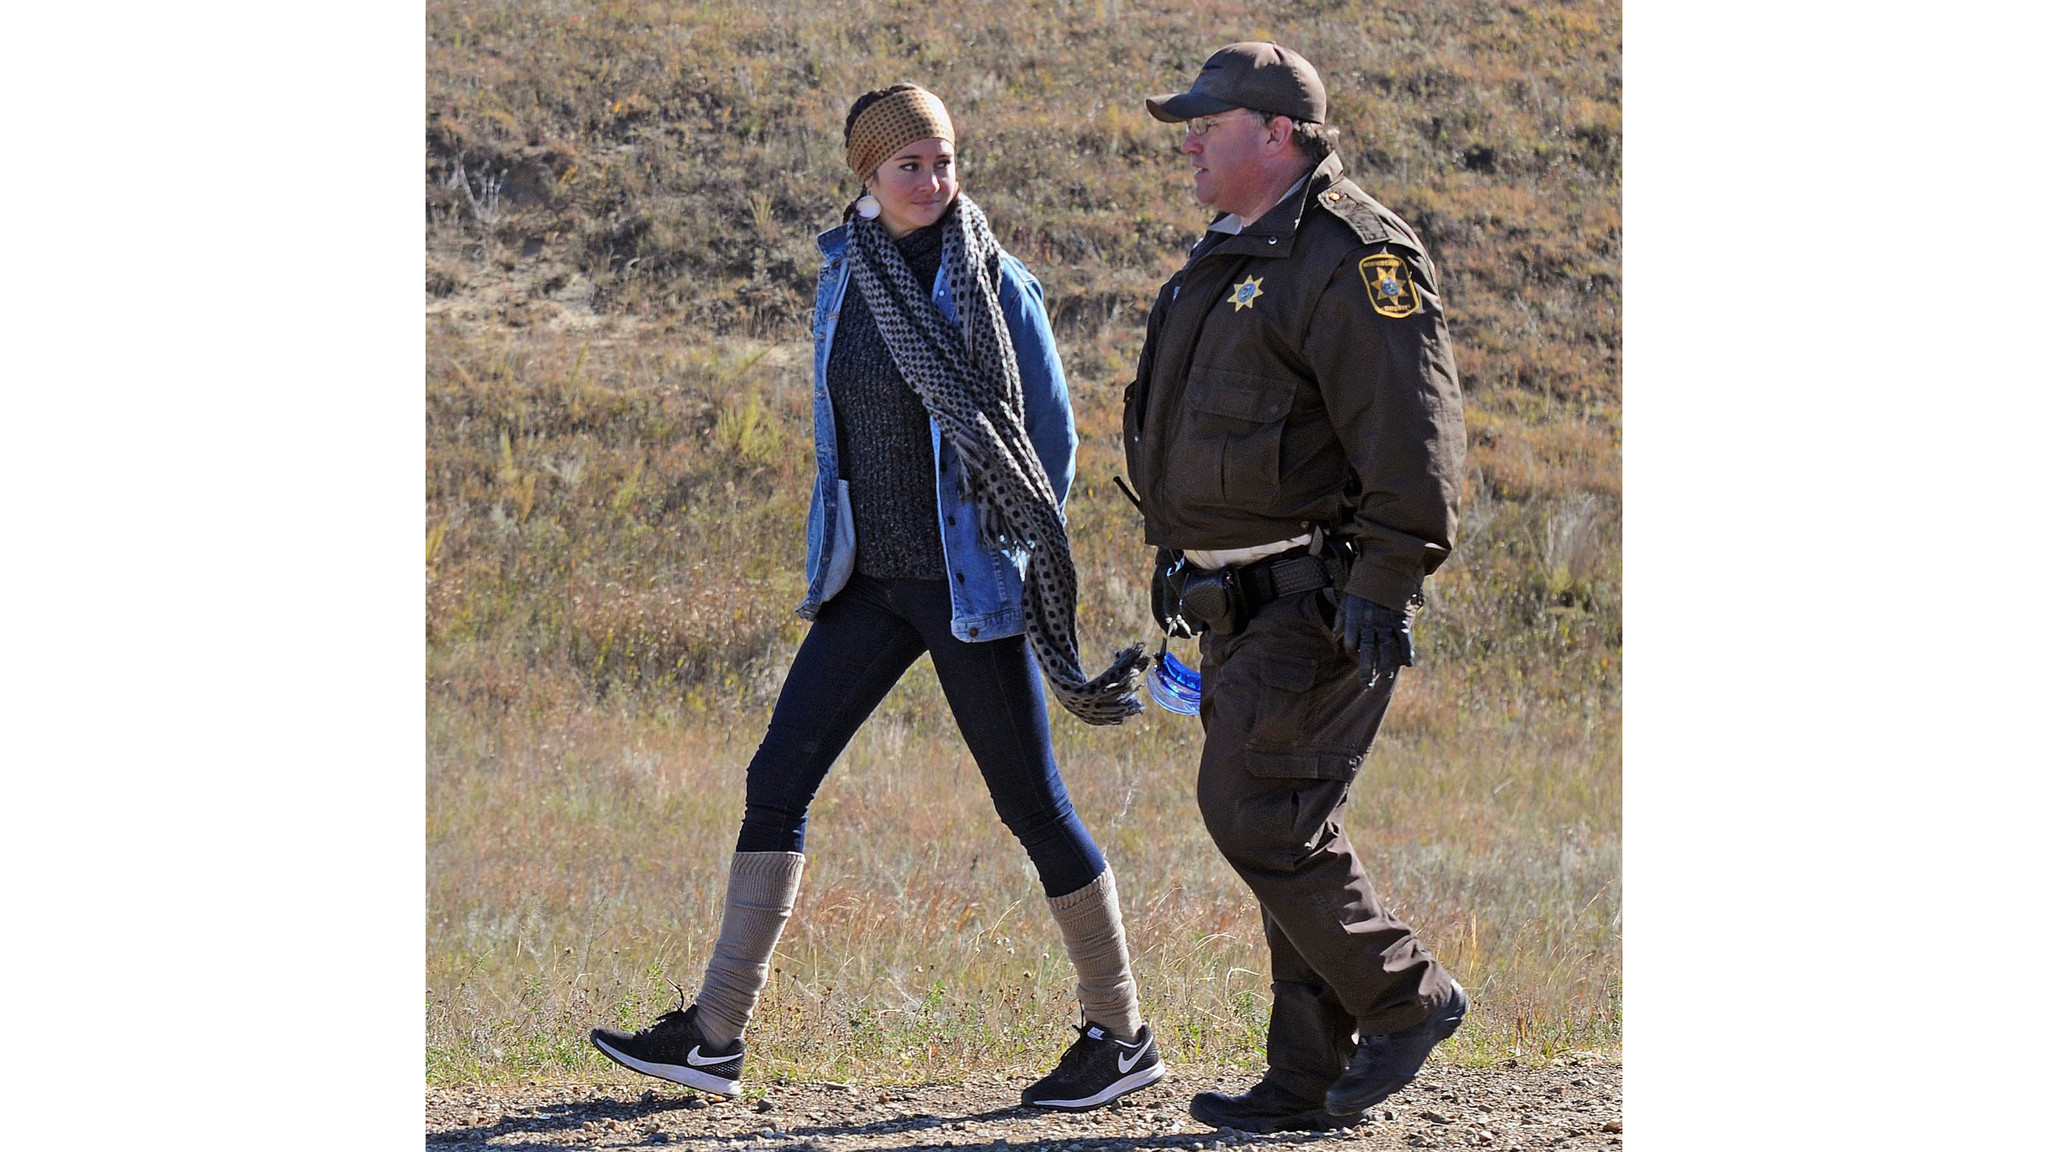 Shailene Woodley is arrested by a Morton County sheriff's deputy near St. Anthony, N.D., in October. (Tom Stromme / Bismarck Tribune)